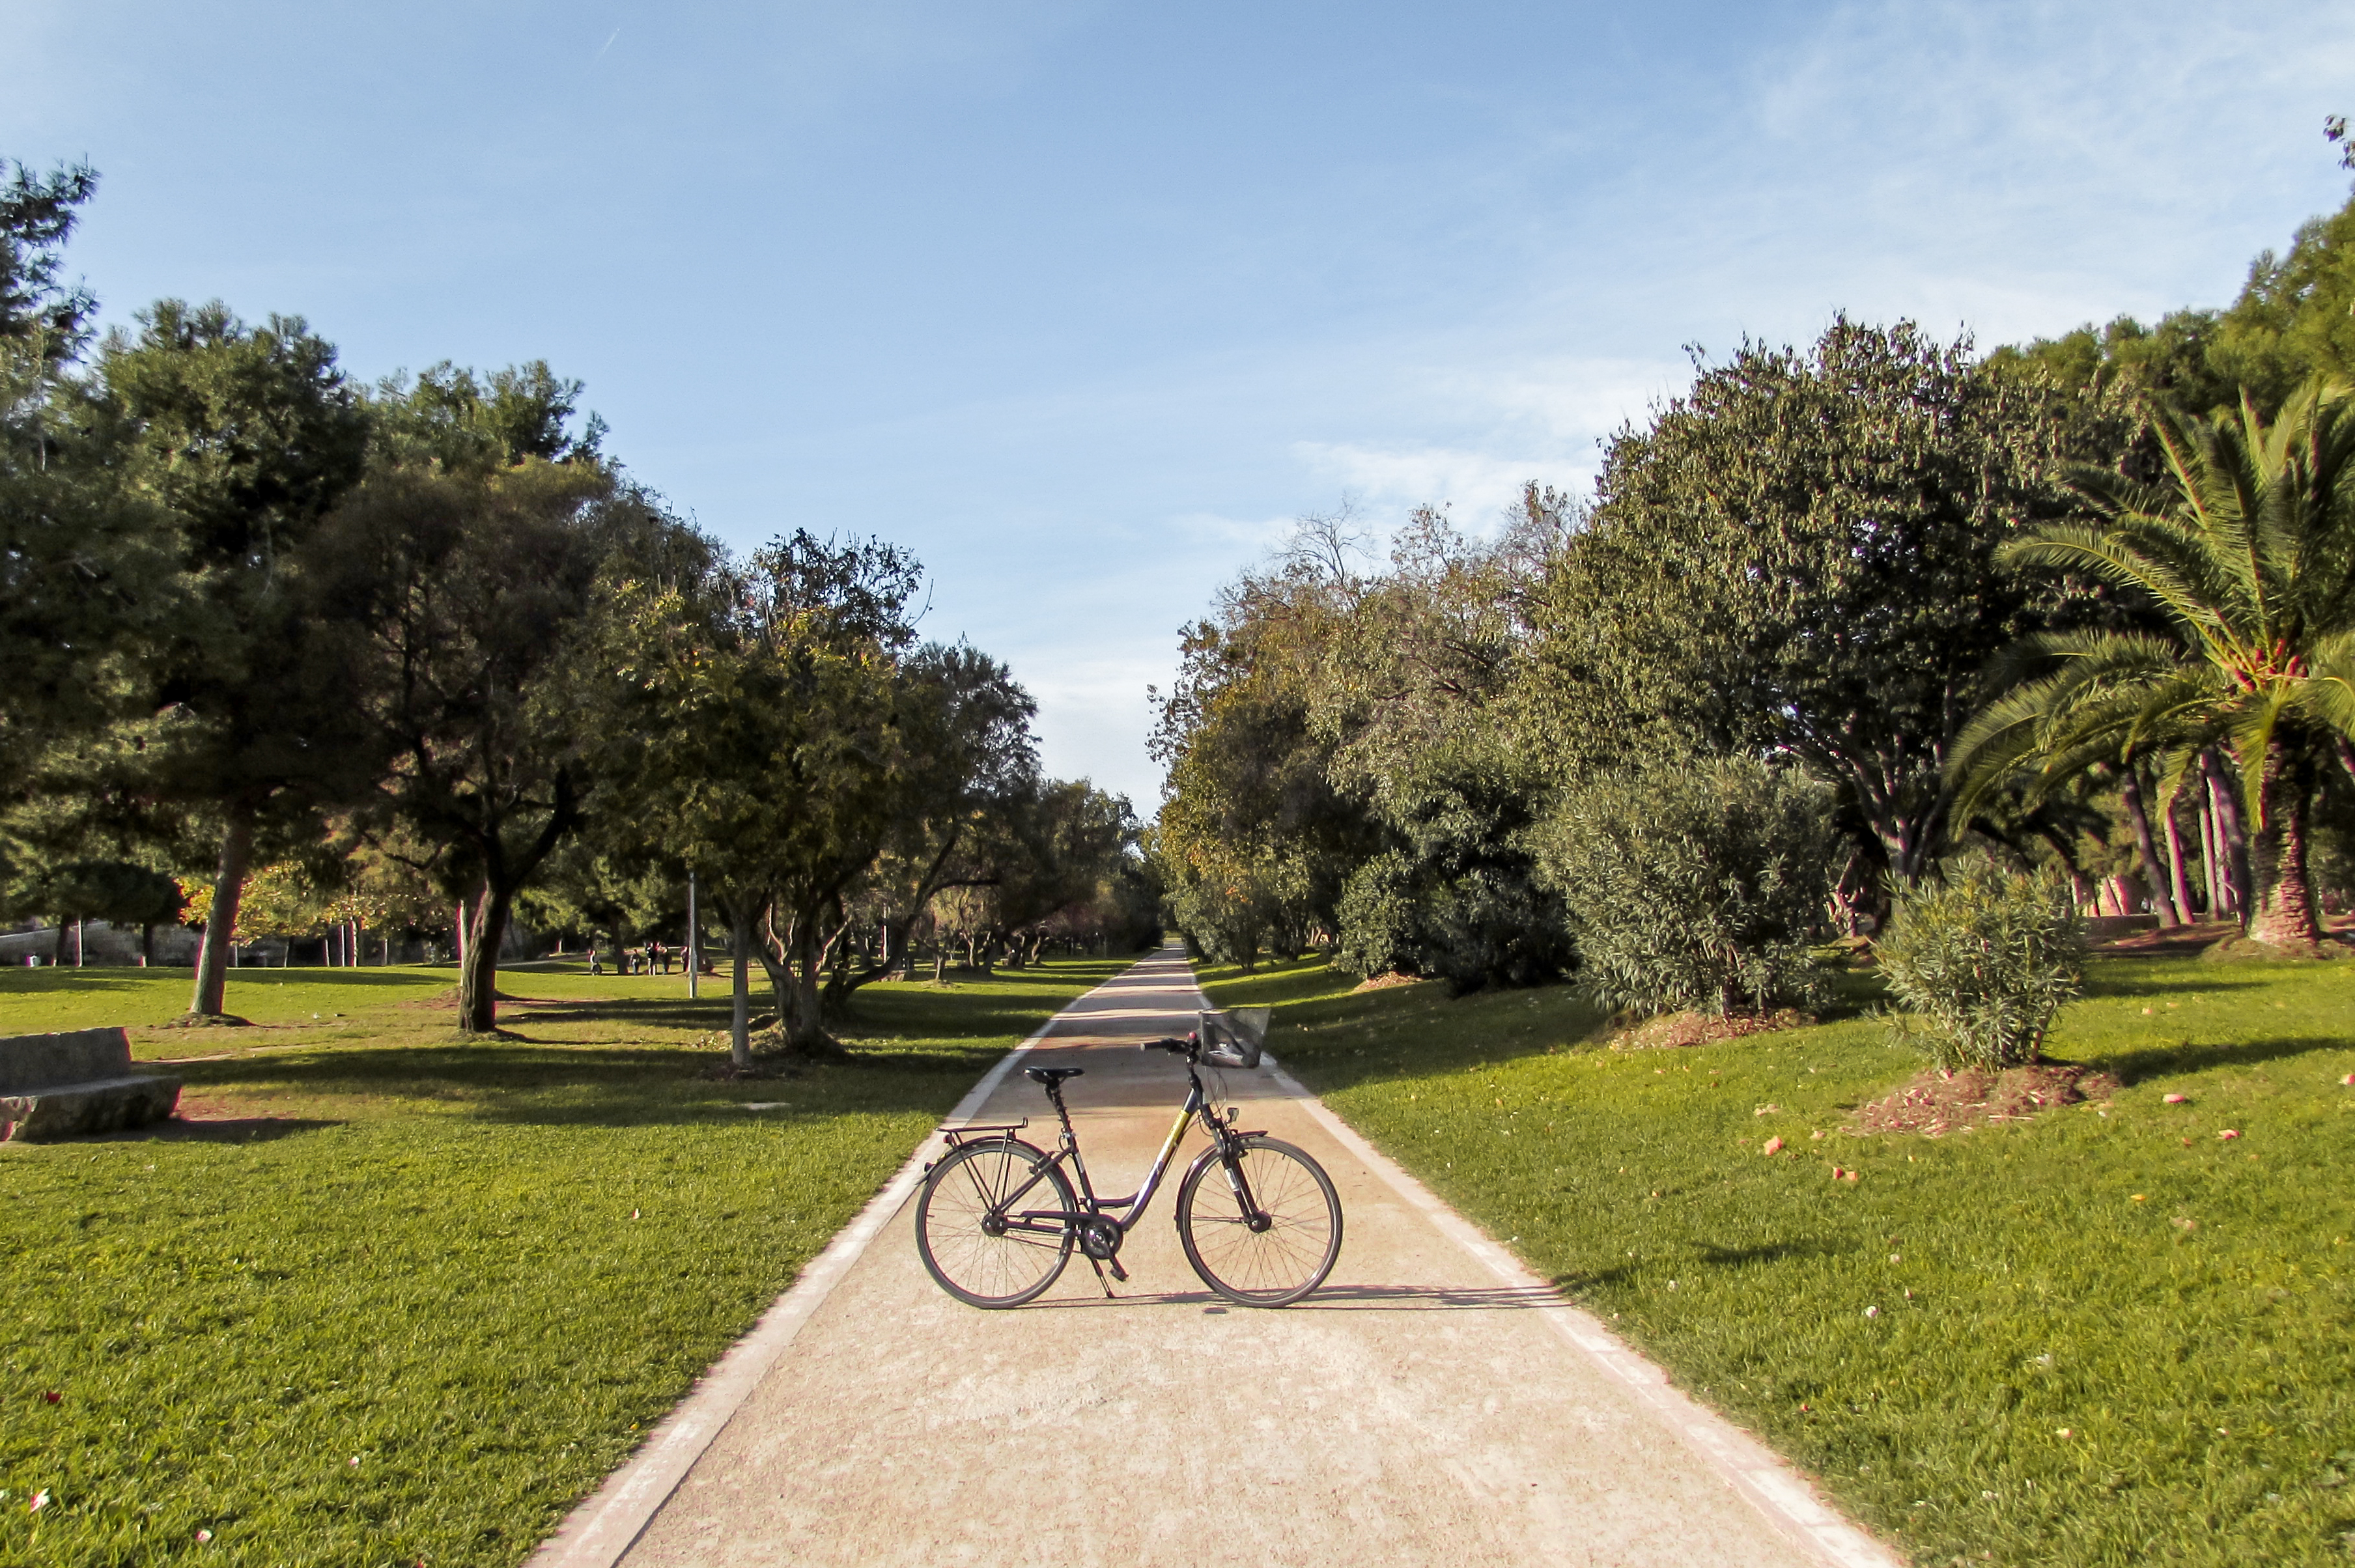 Cycling Túria Park in Valencia - by Ben Holbrook